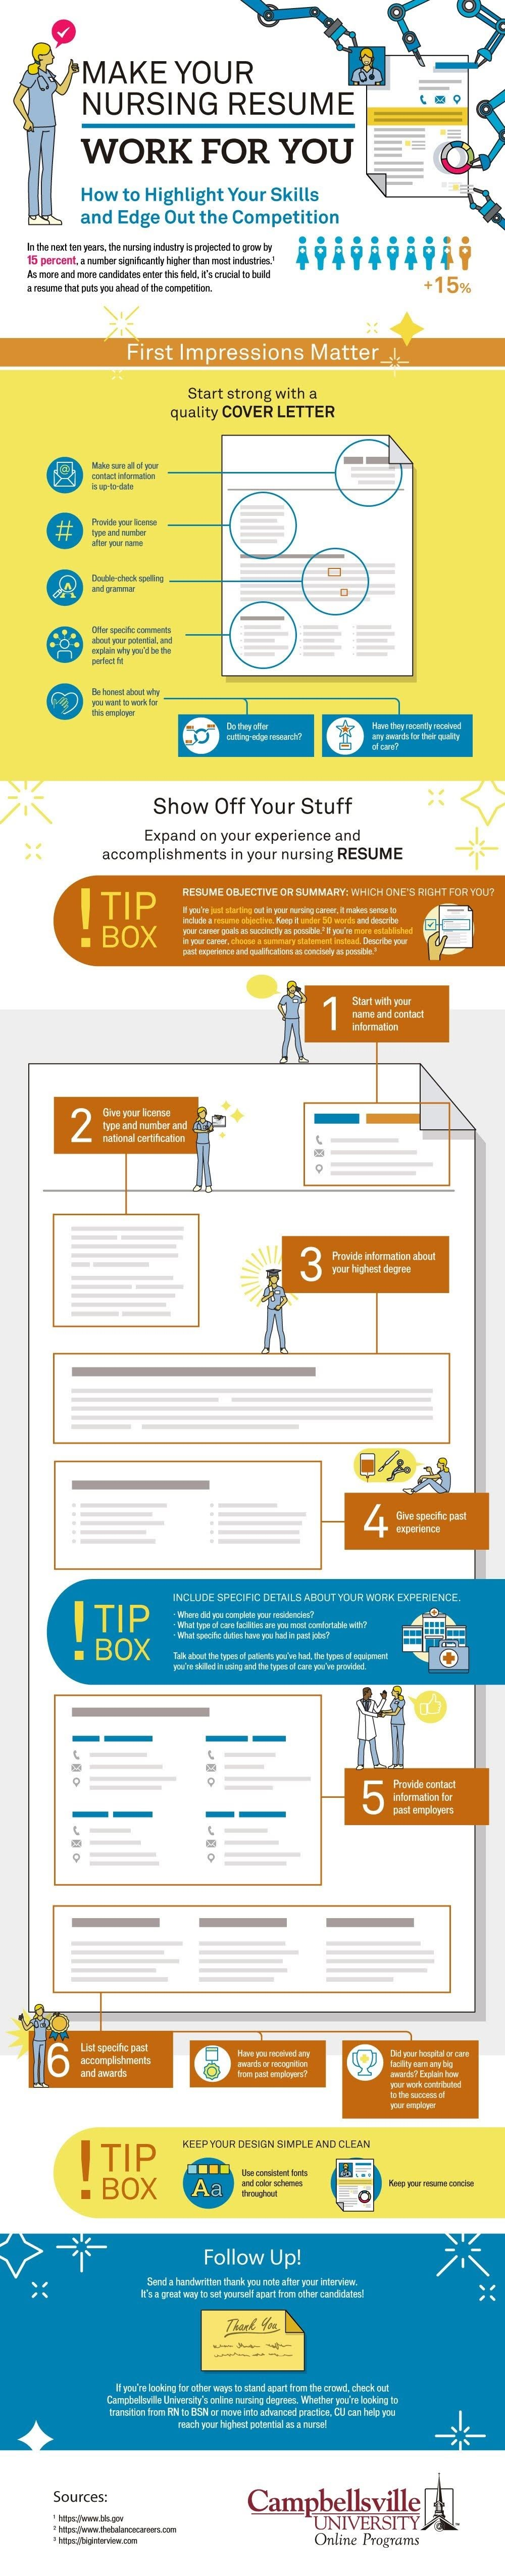 Work for you to resume your nursing care #infographic